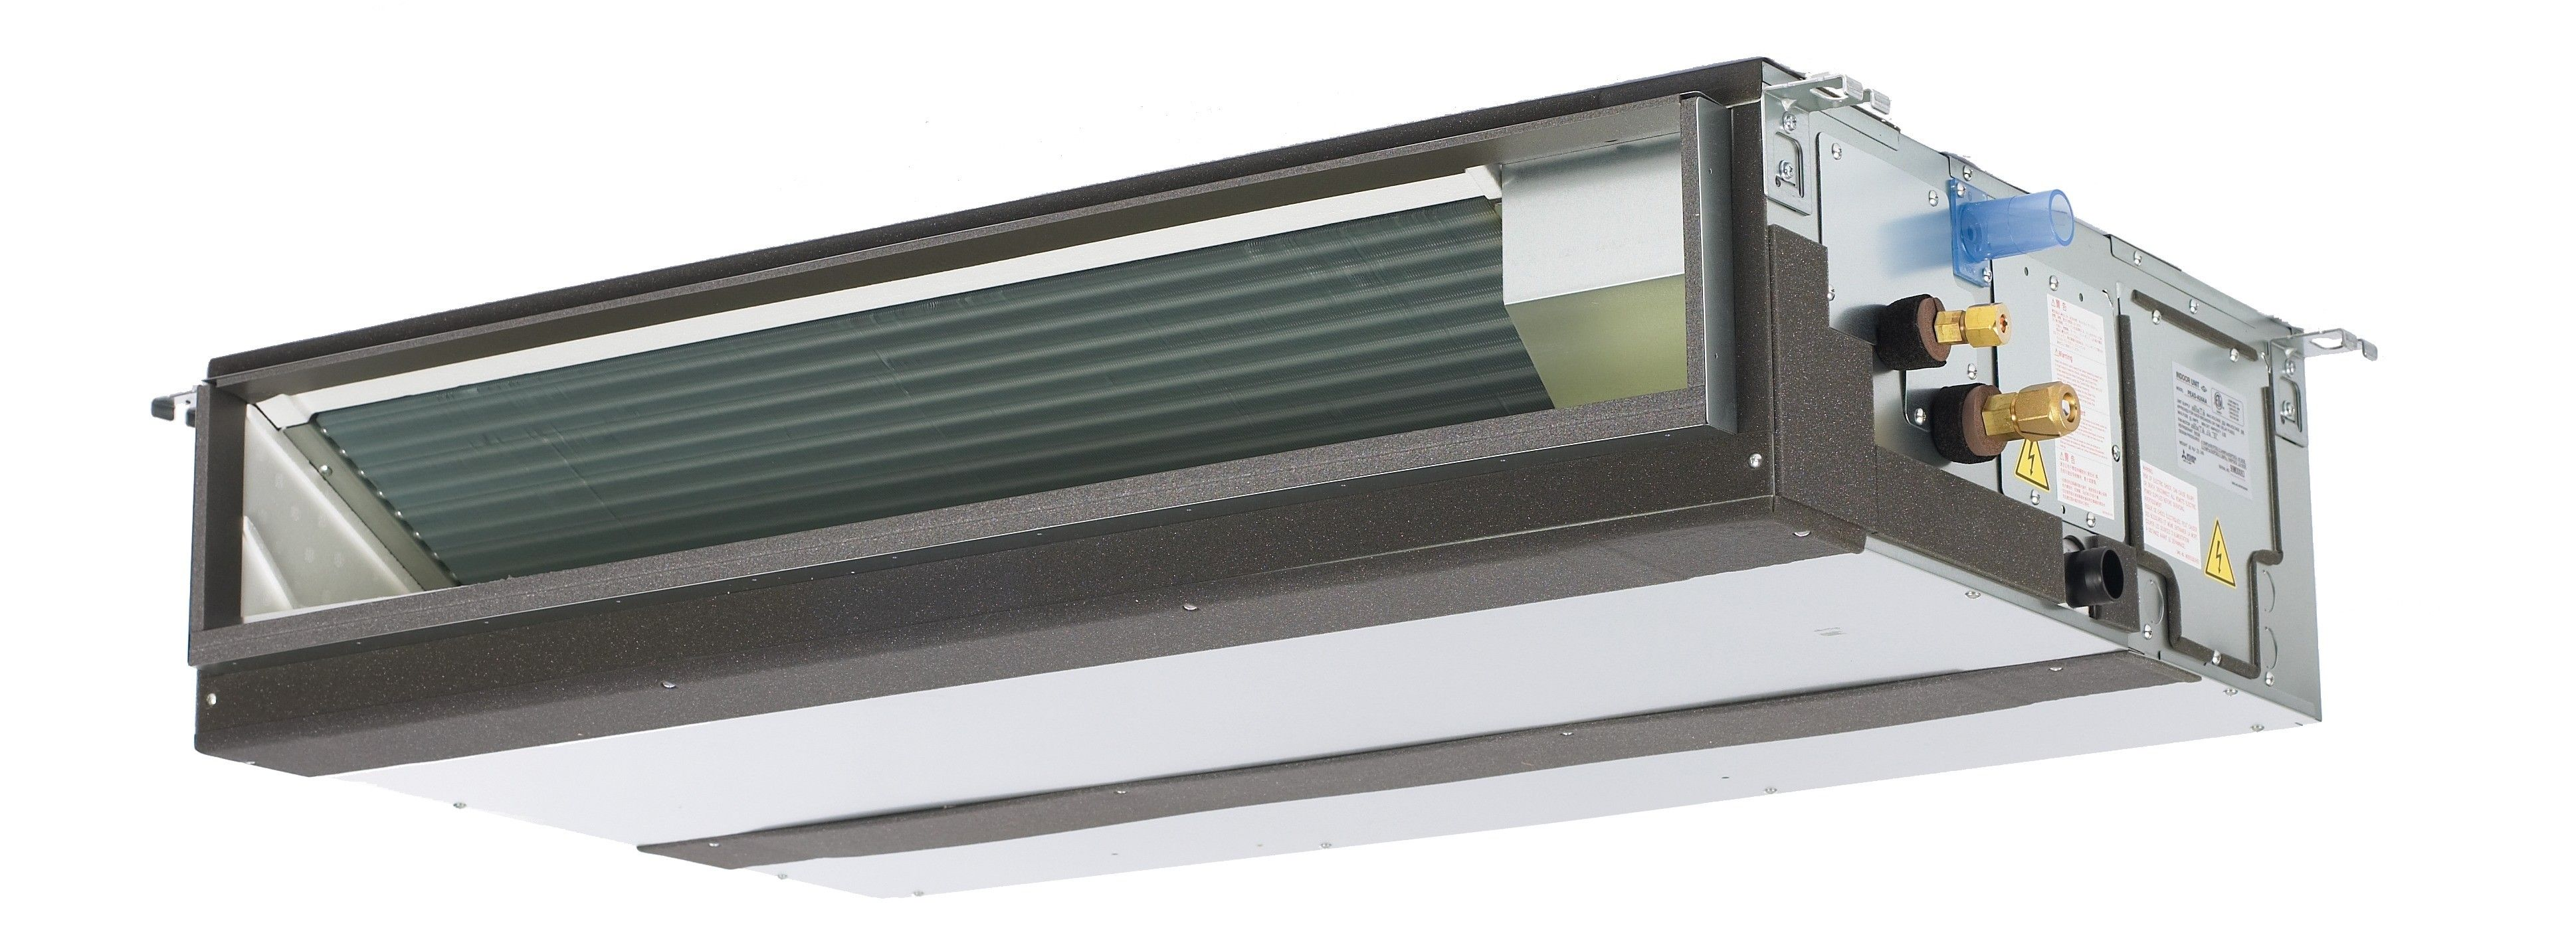 24K BTU Mitsubishi PEAD Horizontal Ducted Indoor Unit